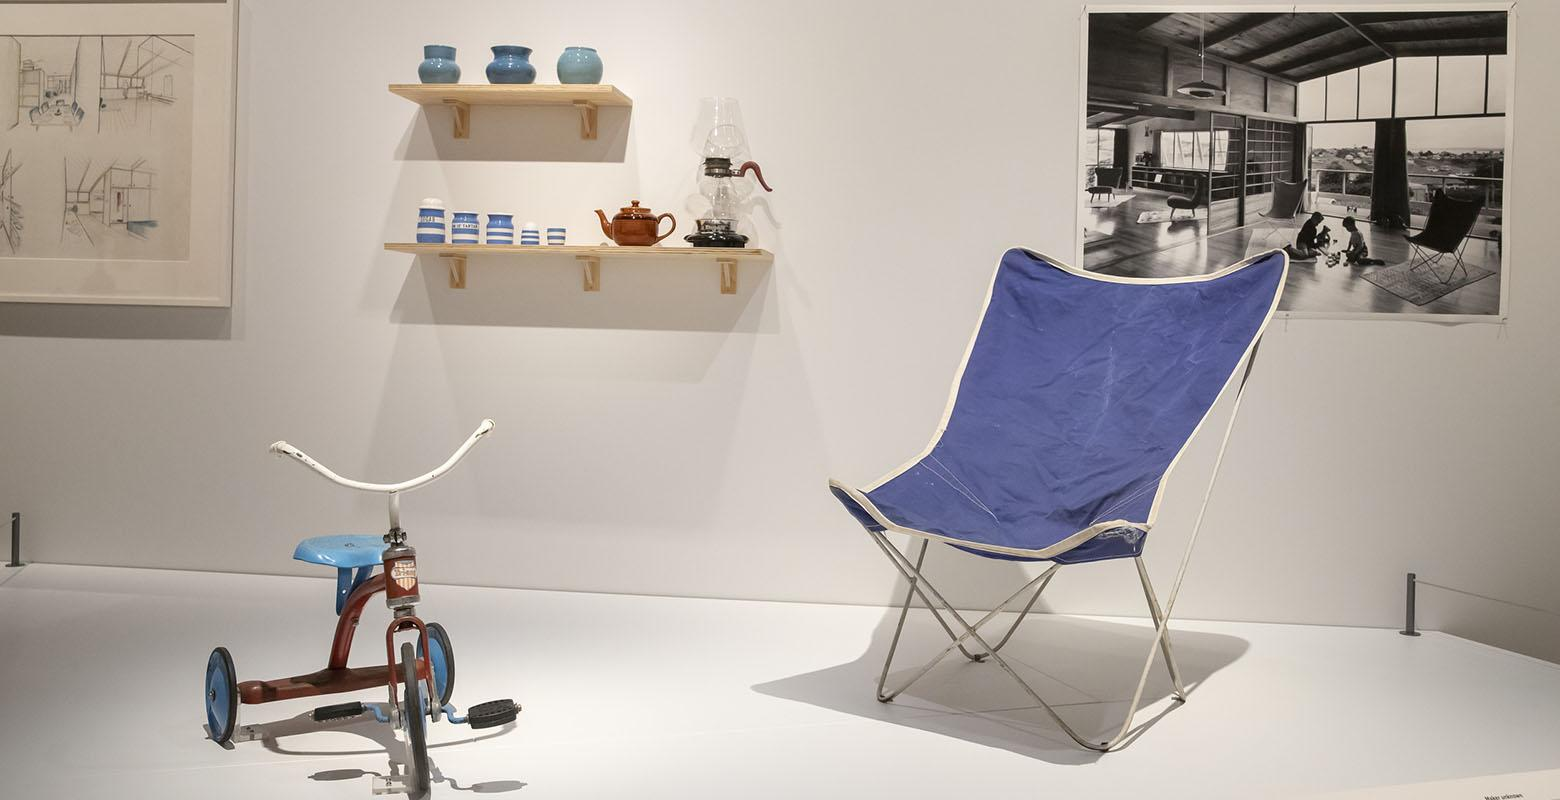 Photo of exhibition view. On a raised platform sits a red and blue trike and a blue chair. On the wall is shelving holding a coffee carafe, a tea pot, and a selection of jars. On the wall is a photo of the interior of a modernist house